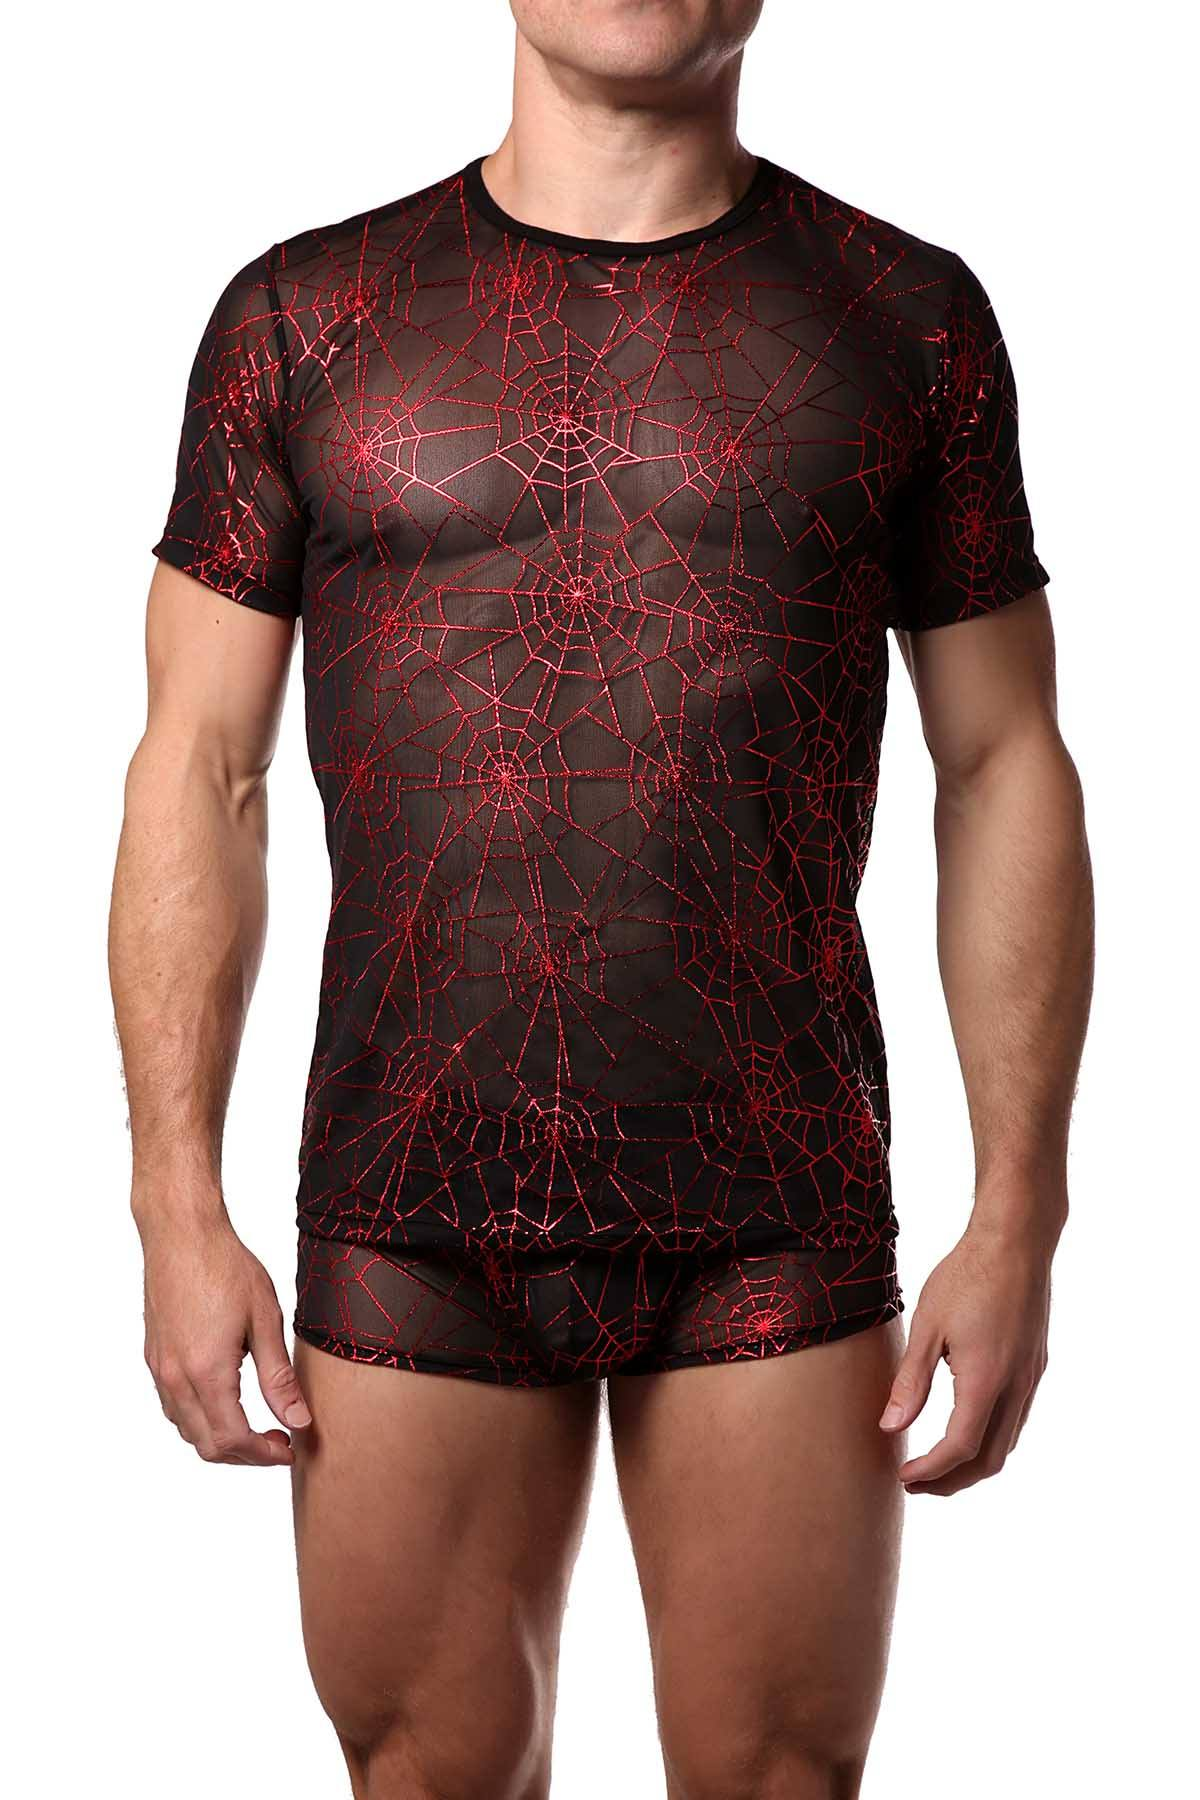 HardCore by GoSoftwear Black/Red Metallic Cobweb Tee